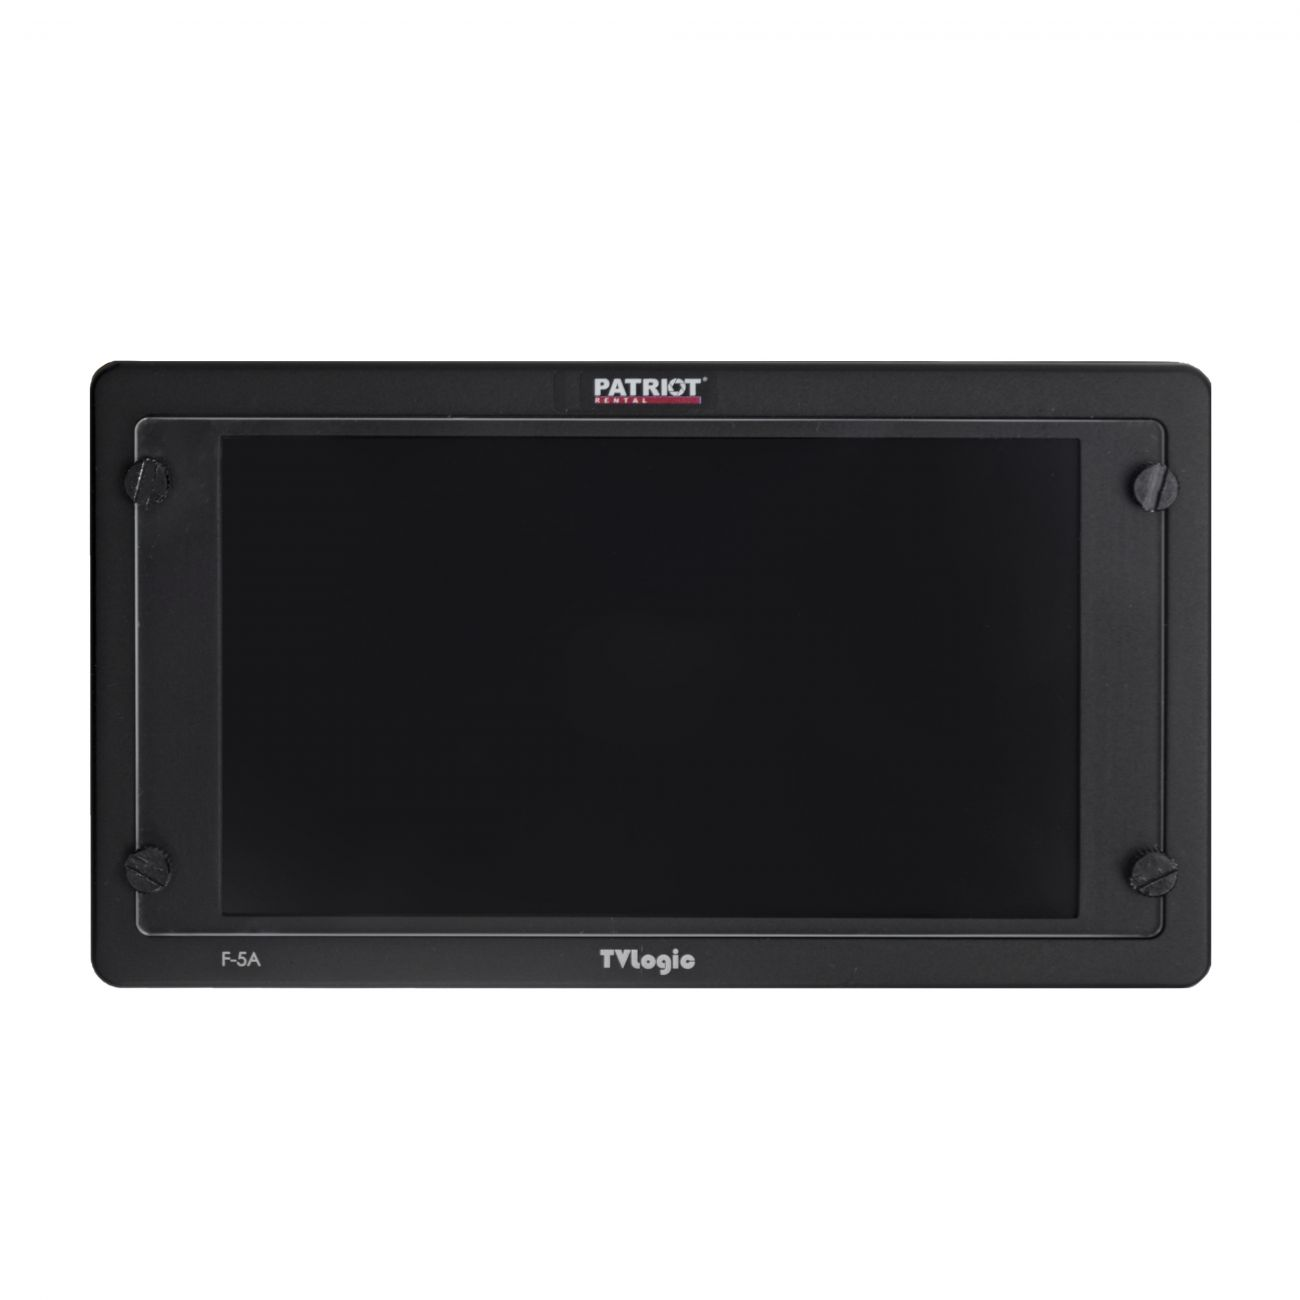 Monitor OnCamera 5.5″ TV Logic F-5A-AG + battery